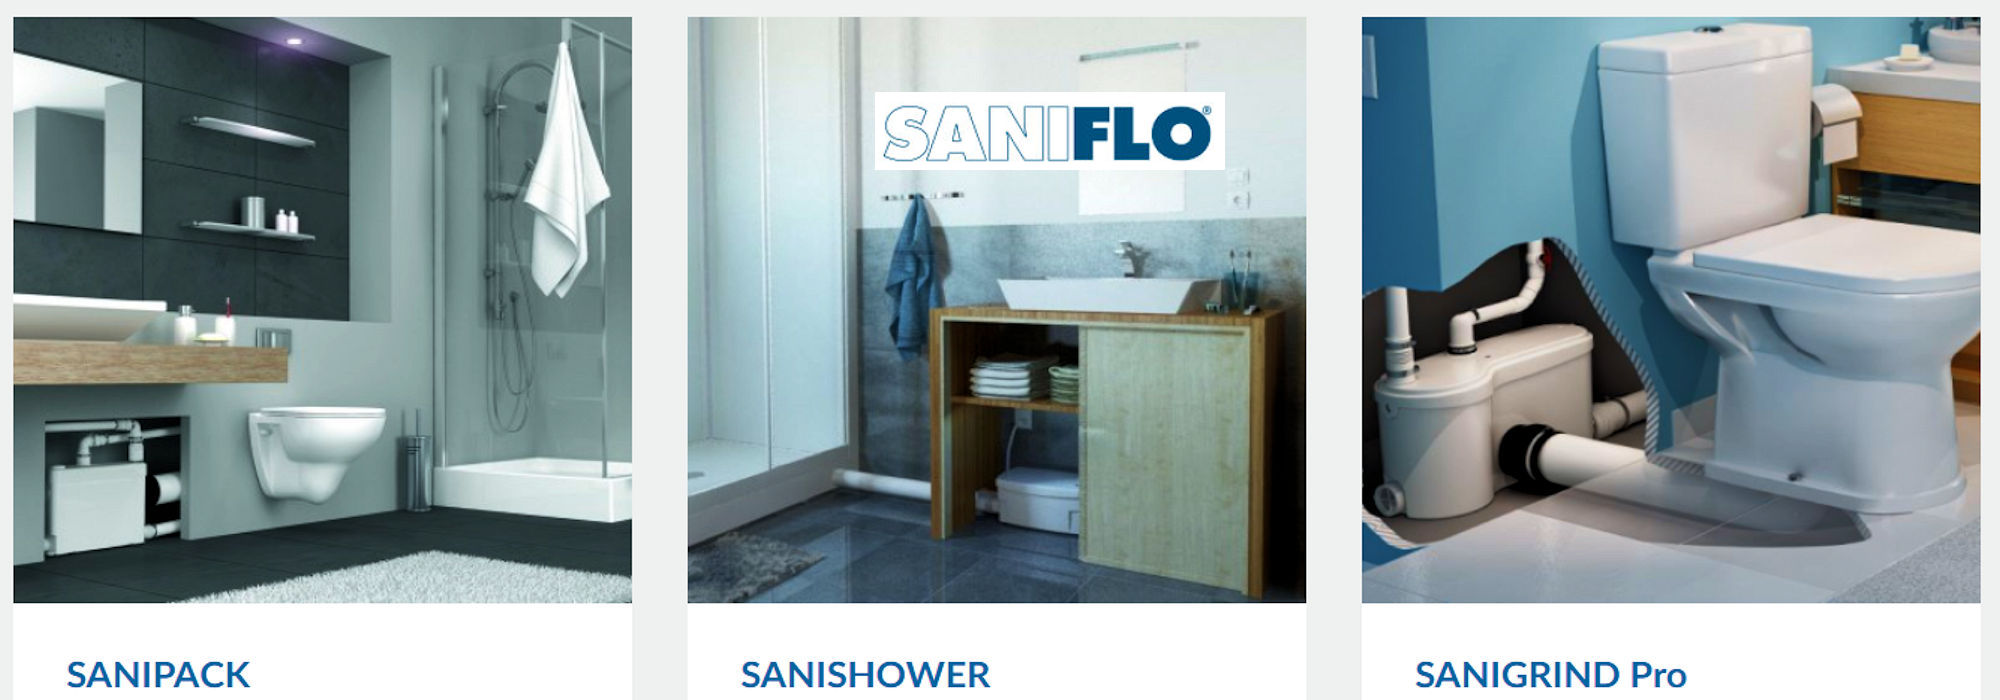 Saniflo_Sanipack_Sanishower_Sanigrind_Pro_w_logo_